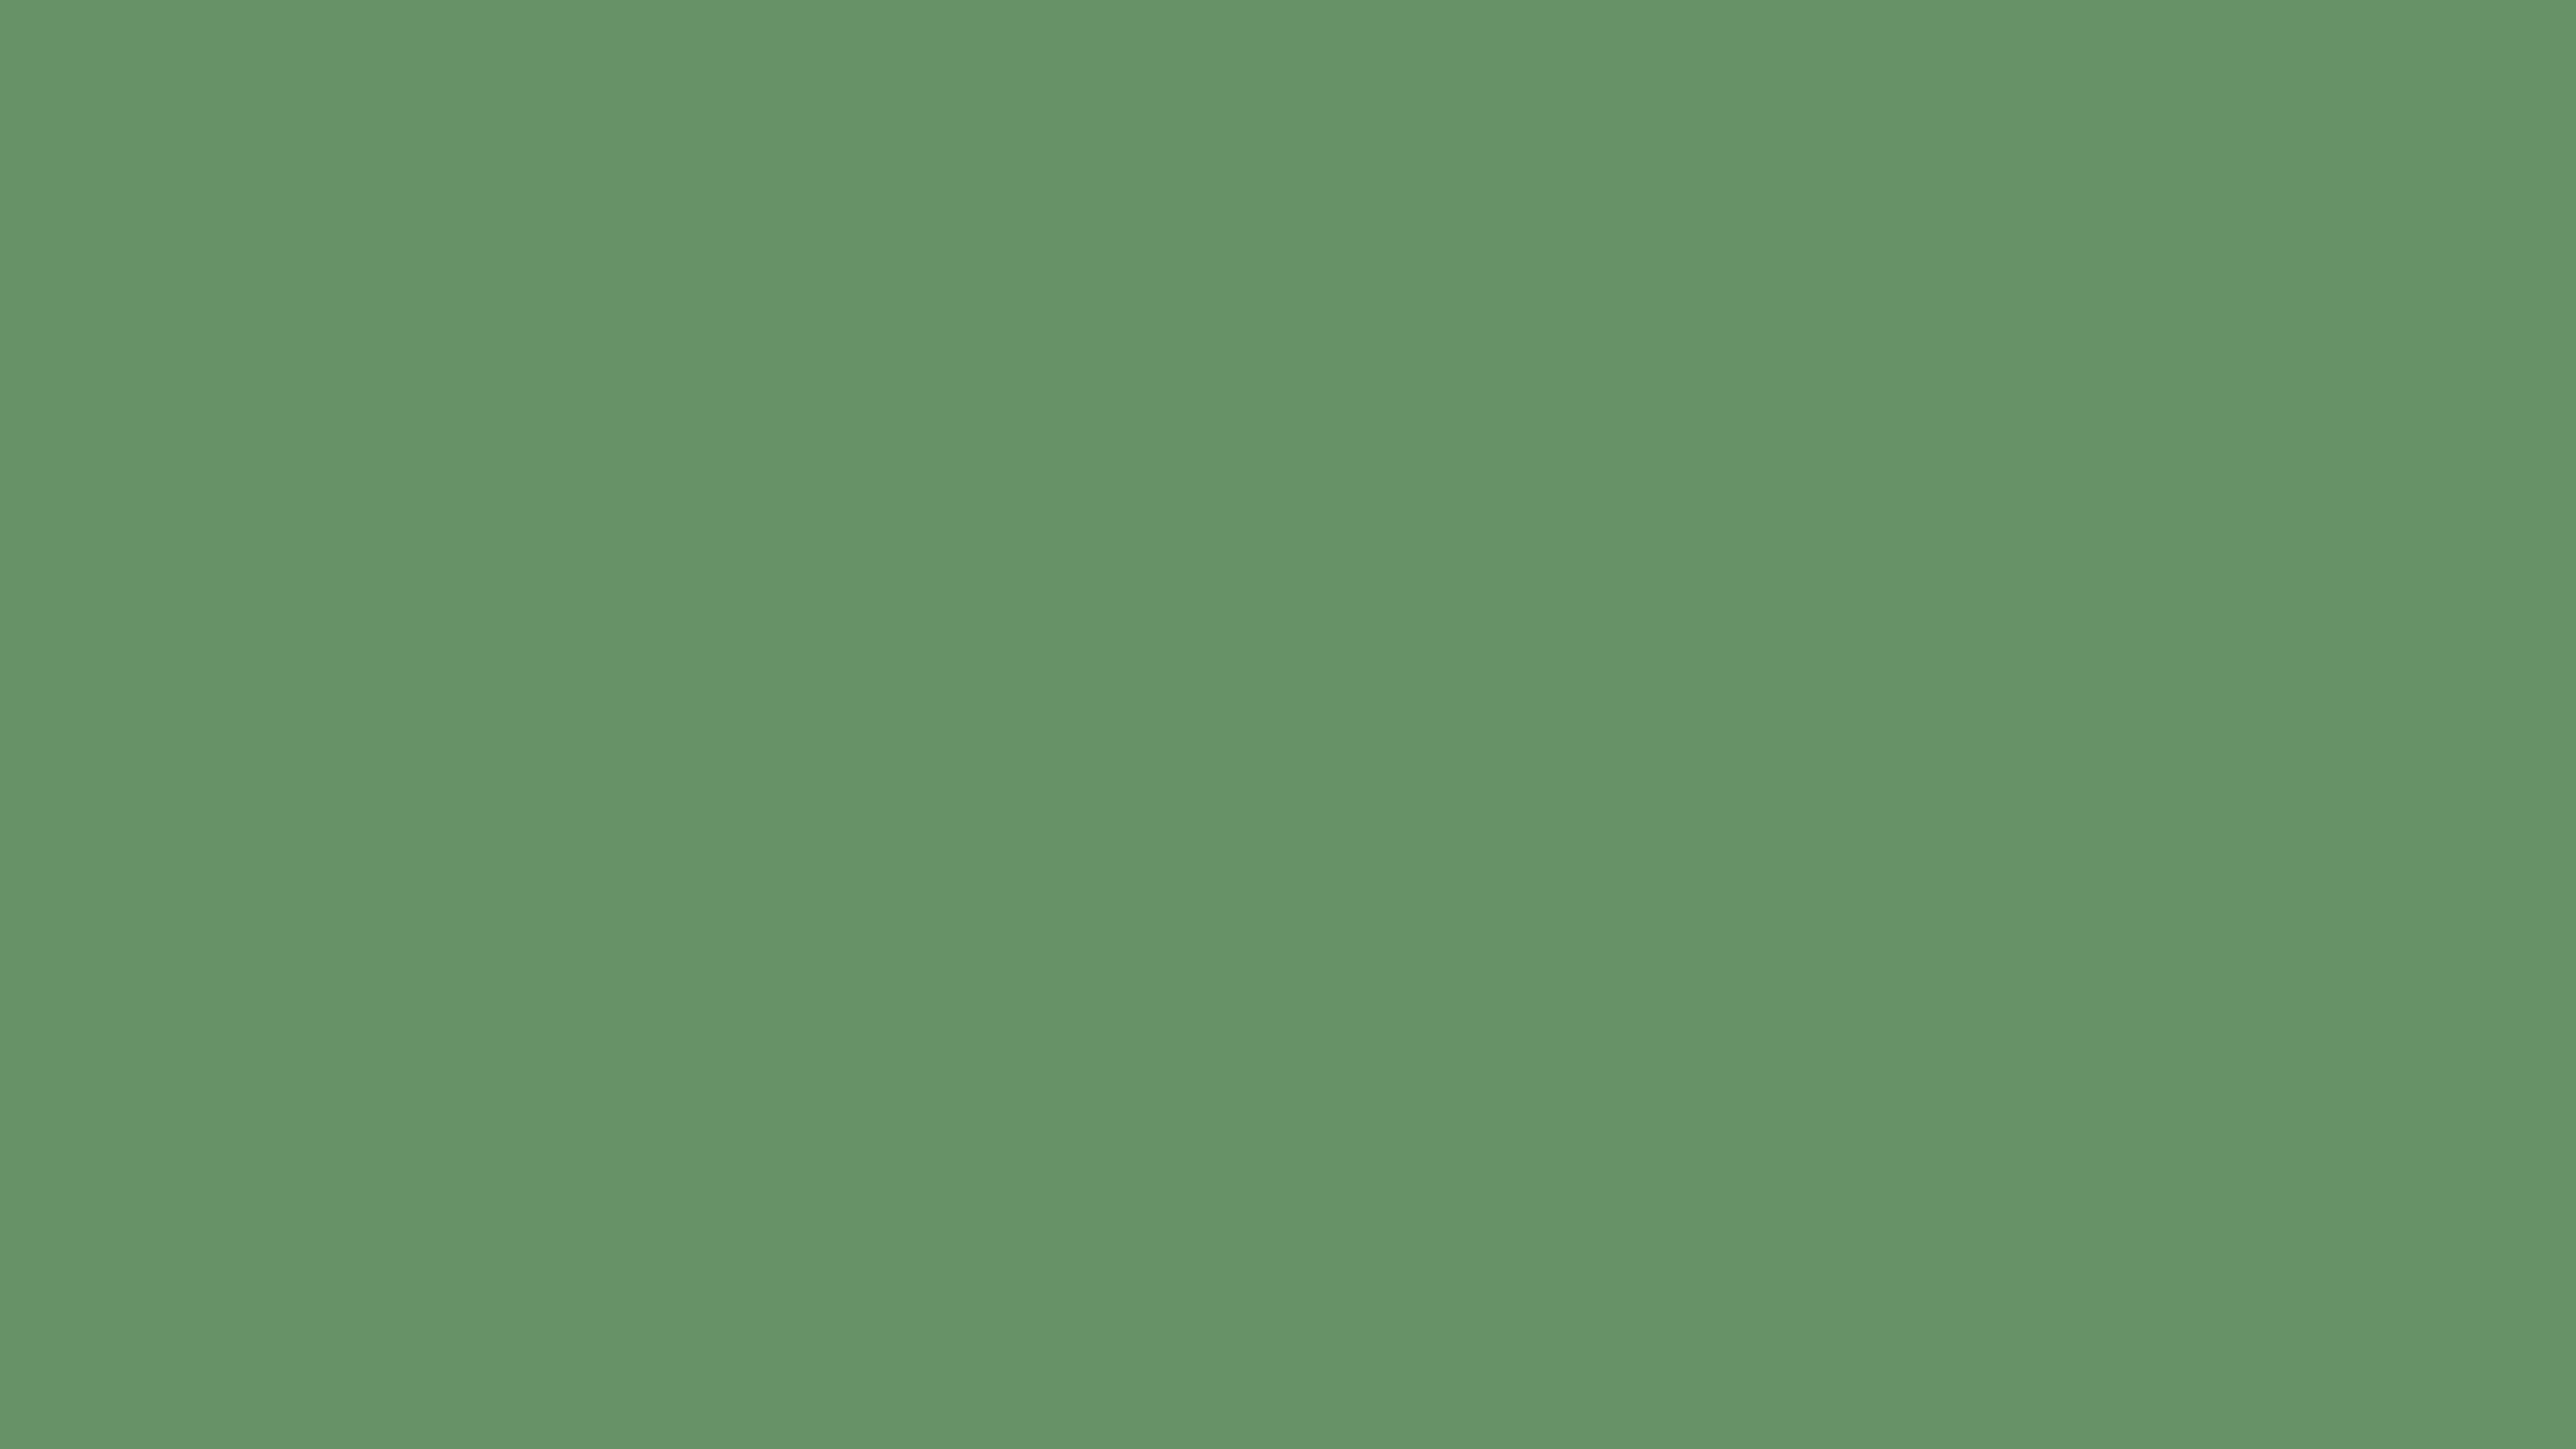 5120x2880 Russian Green Solid Color Background